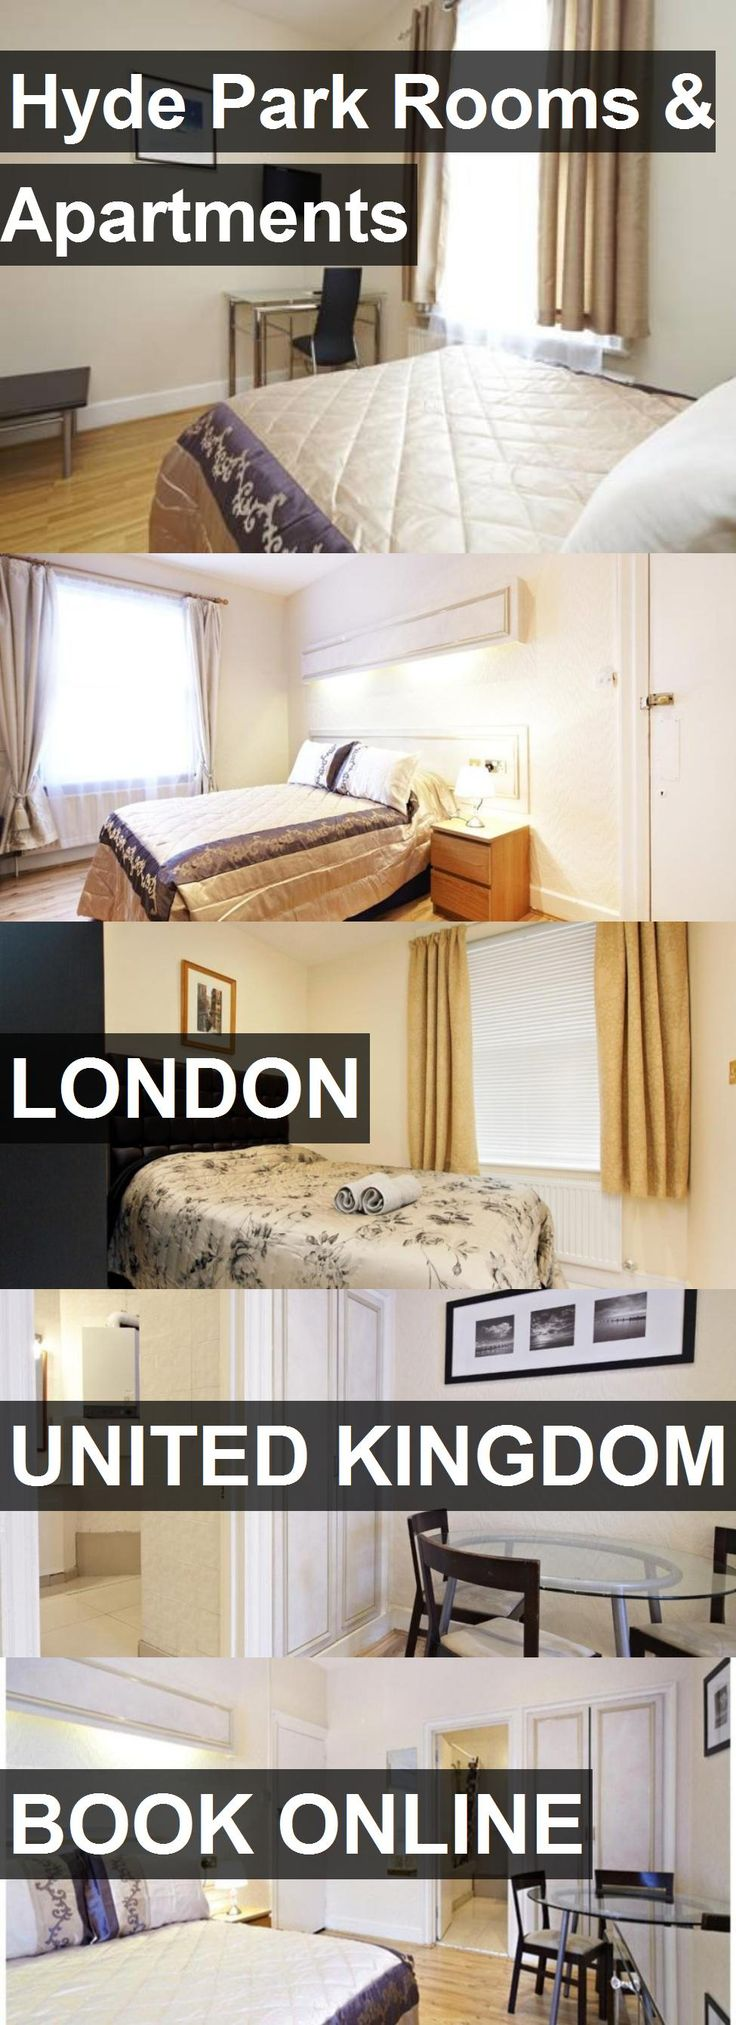 Hotel Hyde Park Rooms